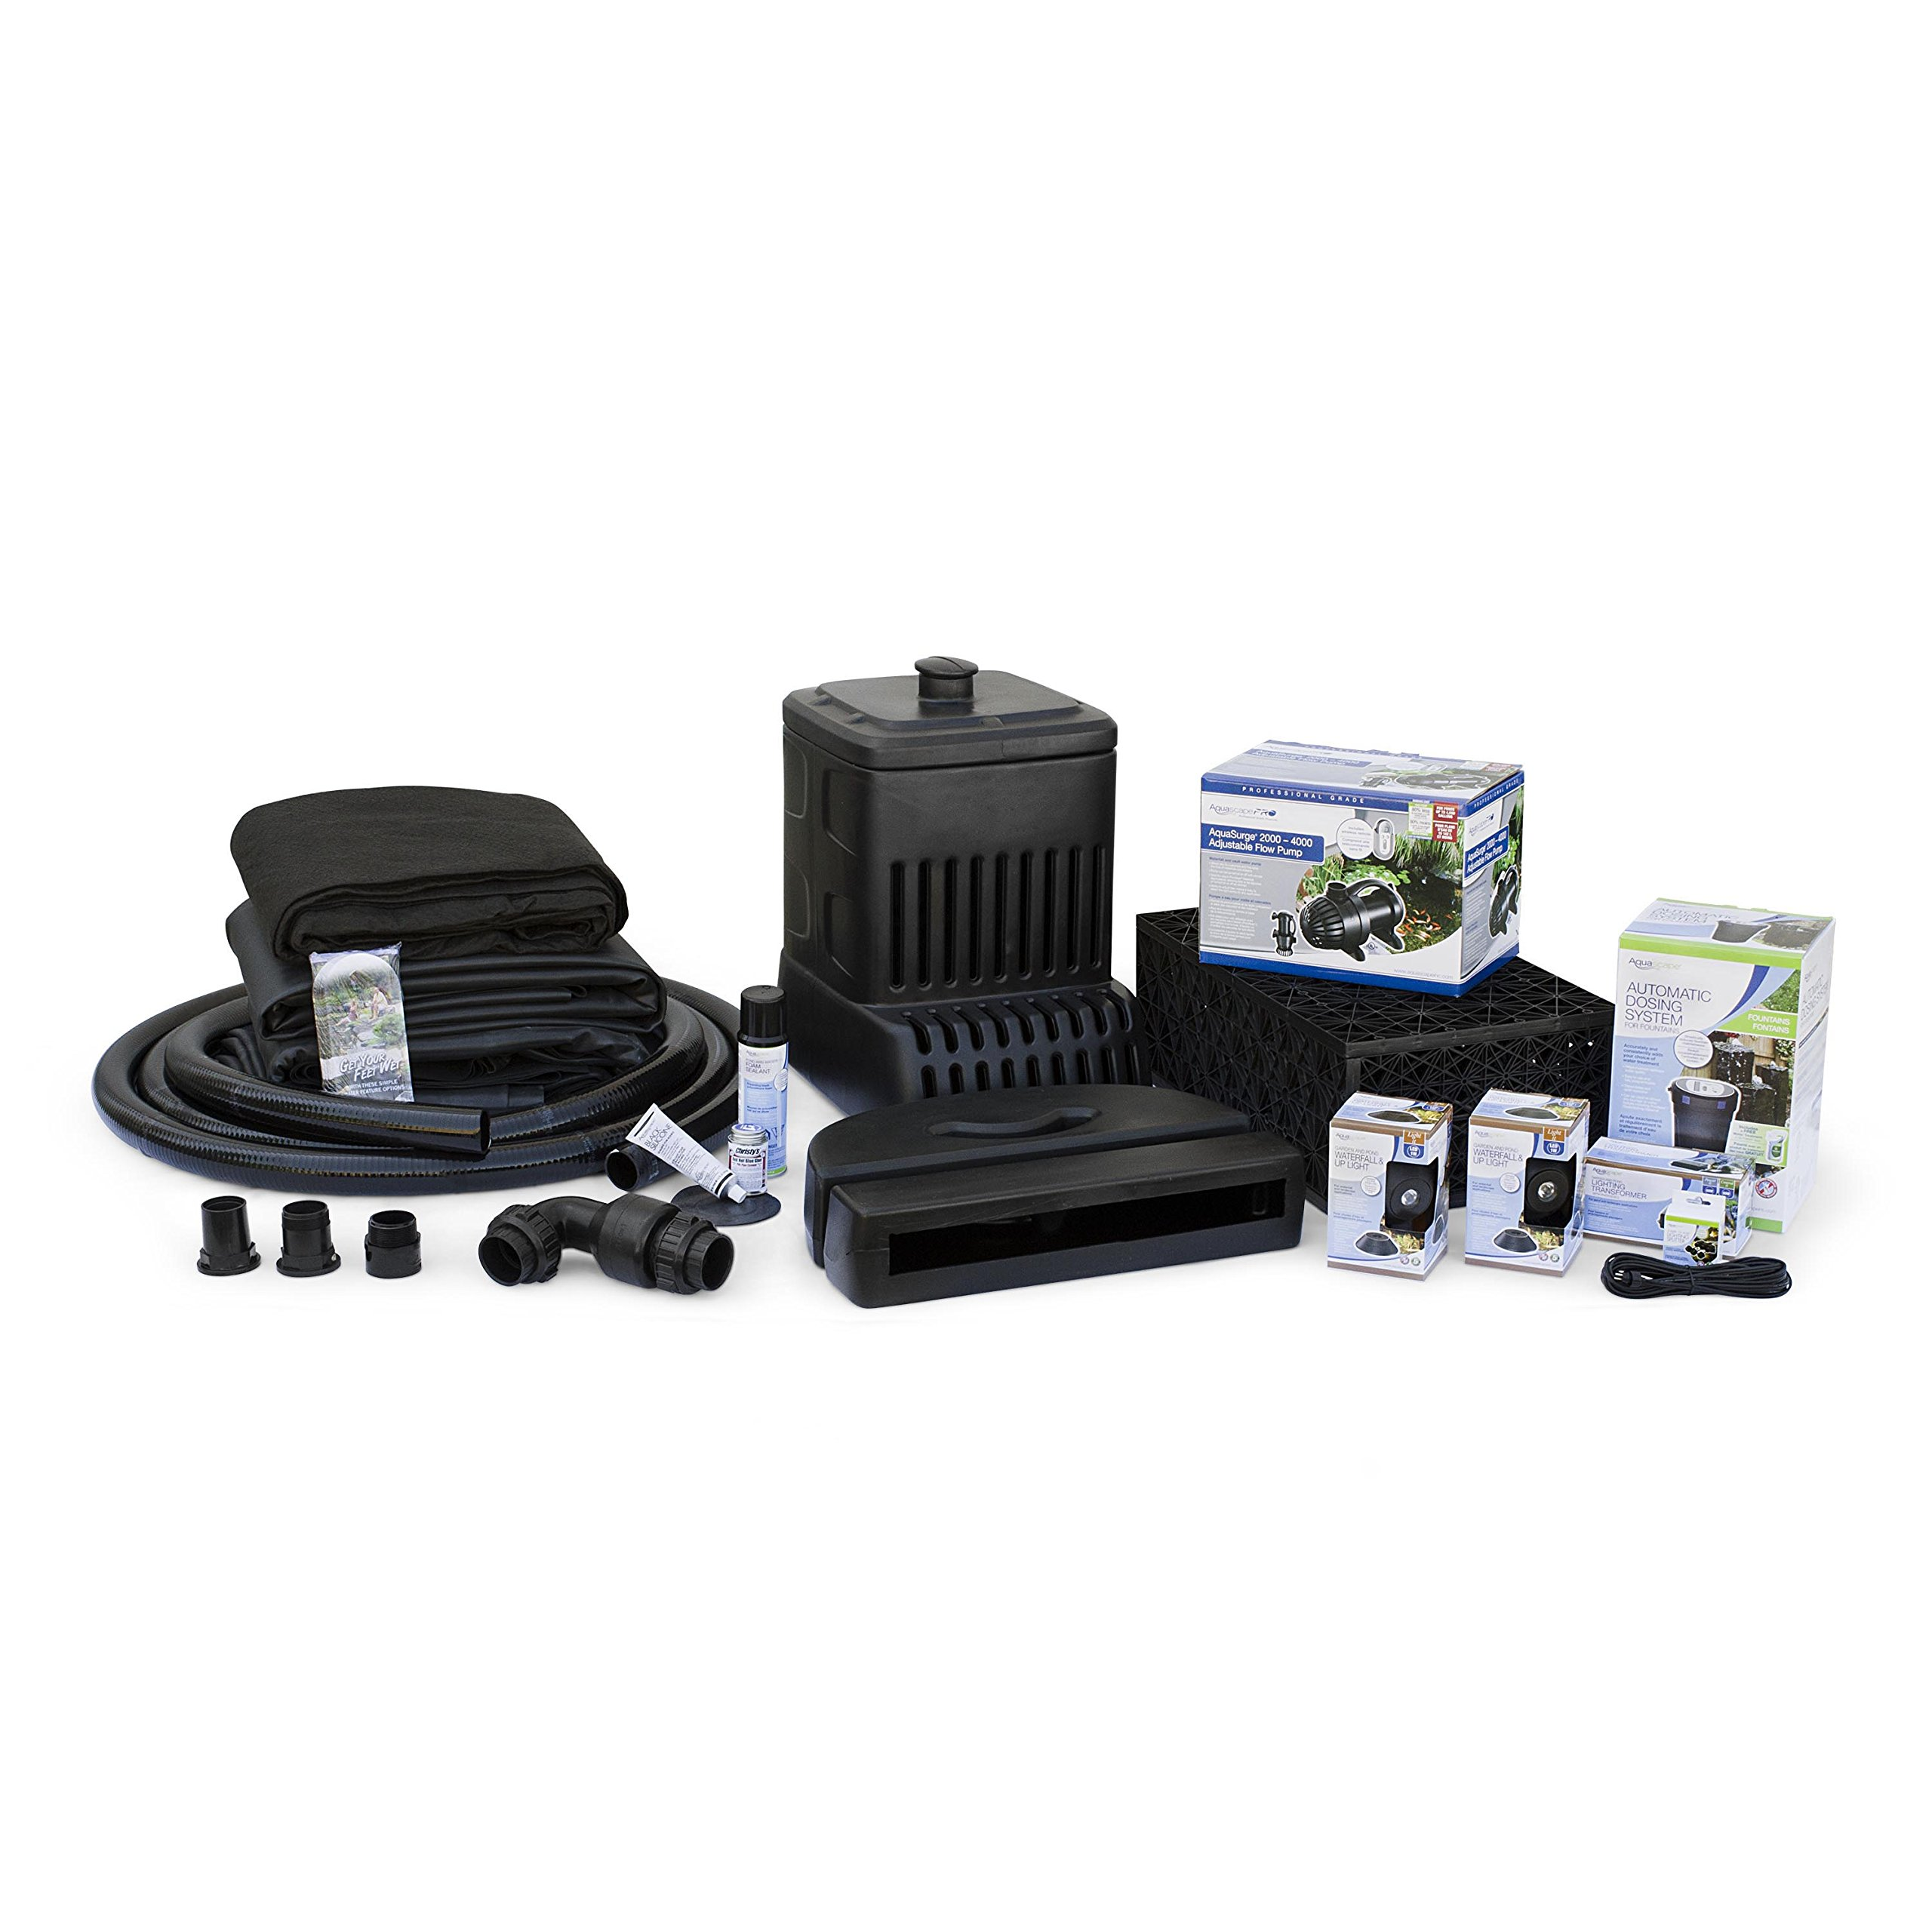 Aquascape Complete Waterfall Kit with 16 Feet Stream | Medium | AquaSurgePRO 2000-4000 Pump by Aquascape